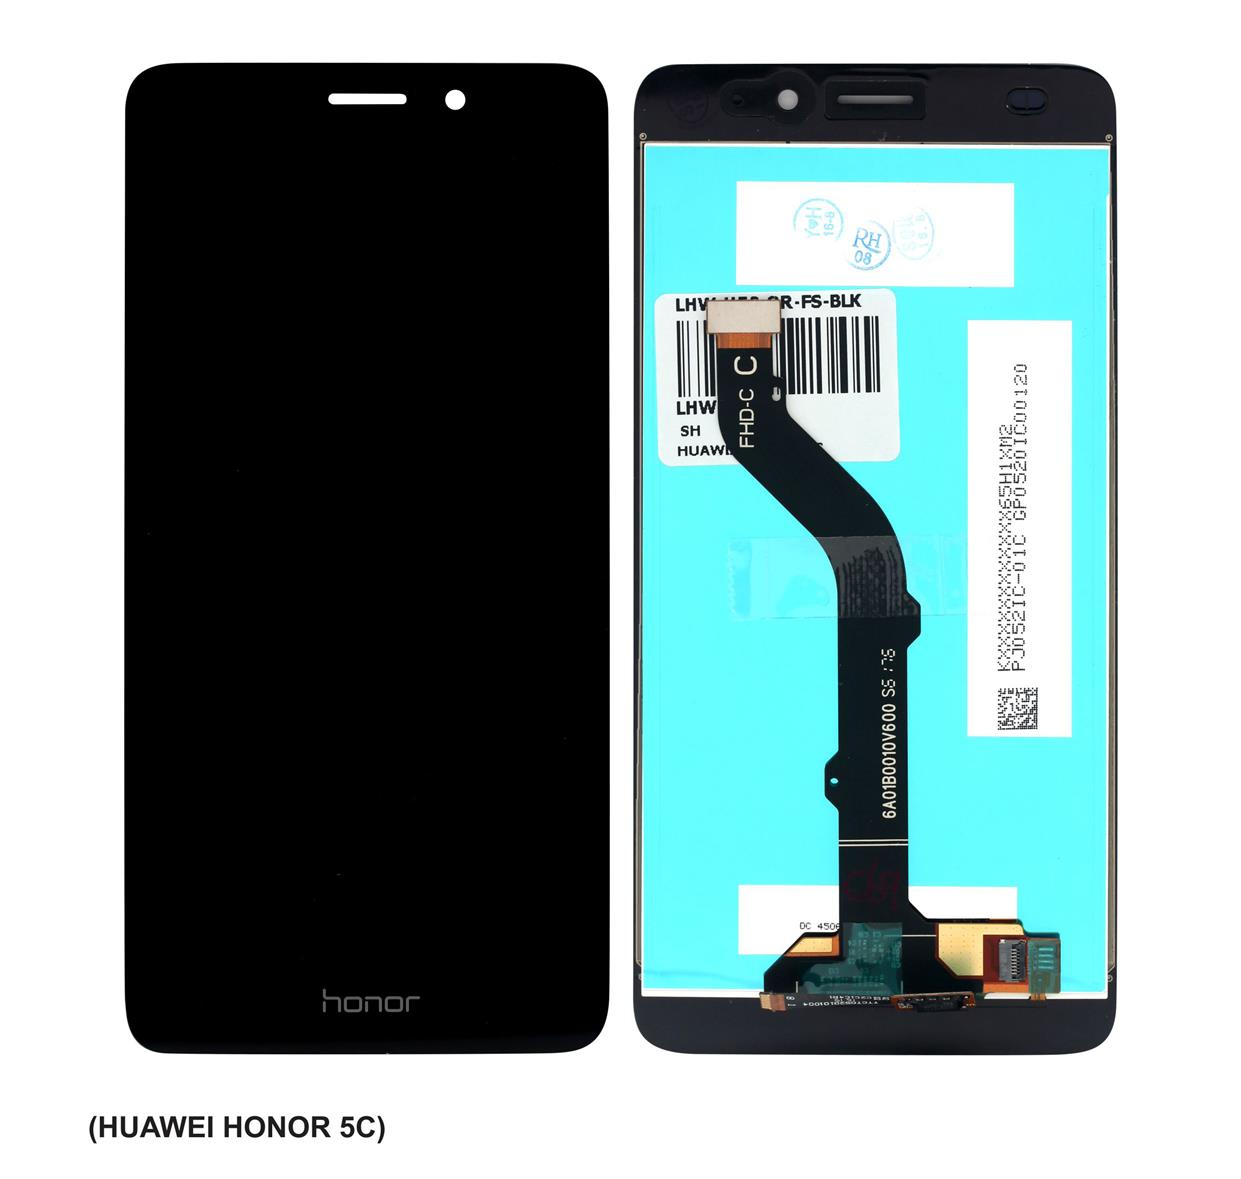 LCD HUAWEI FOR HONOR 5C,MATE 8,P9 LITE,P9